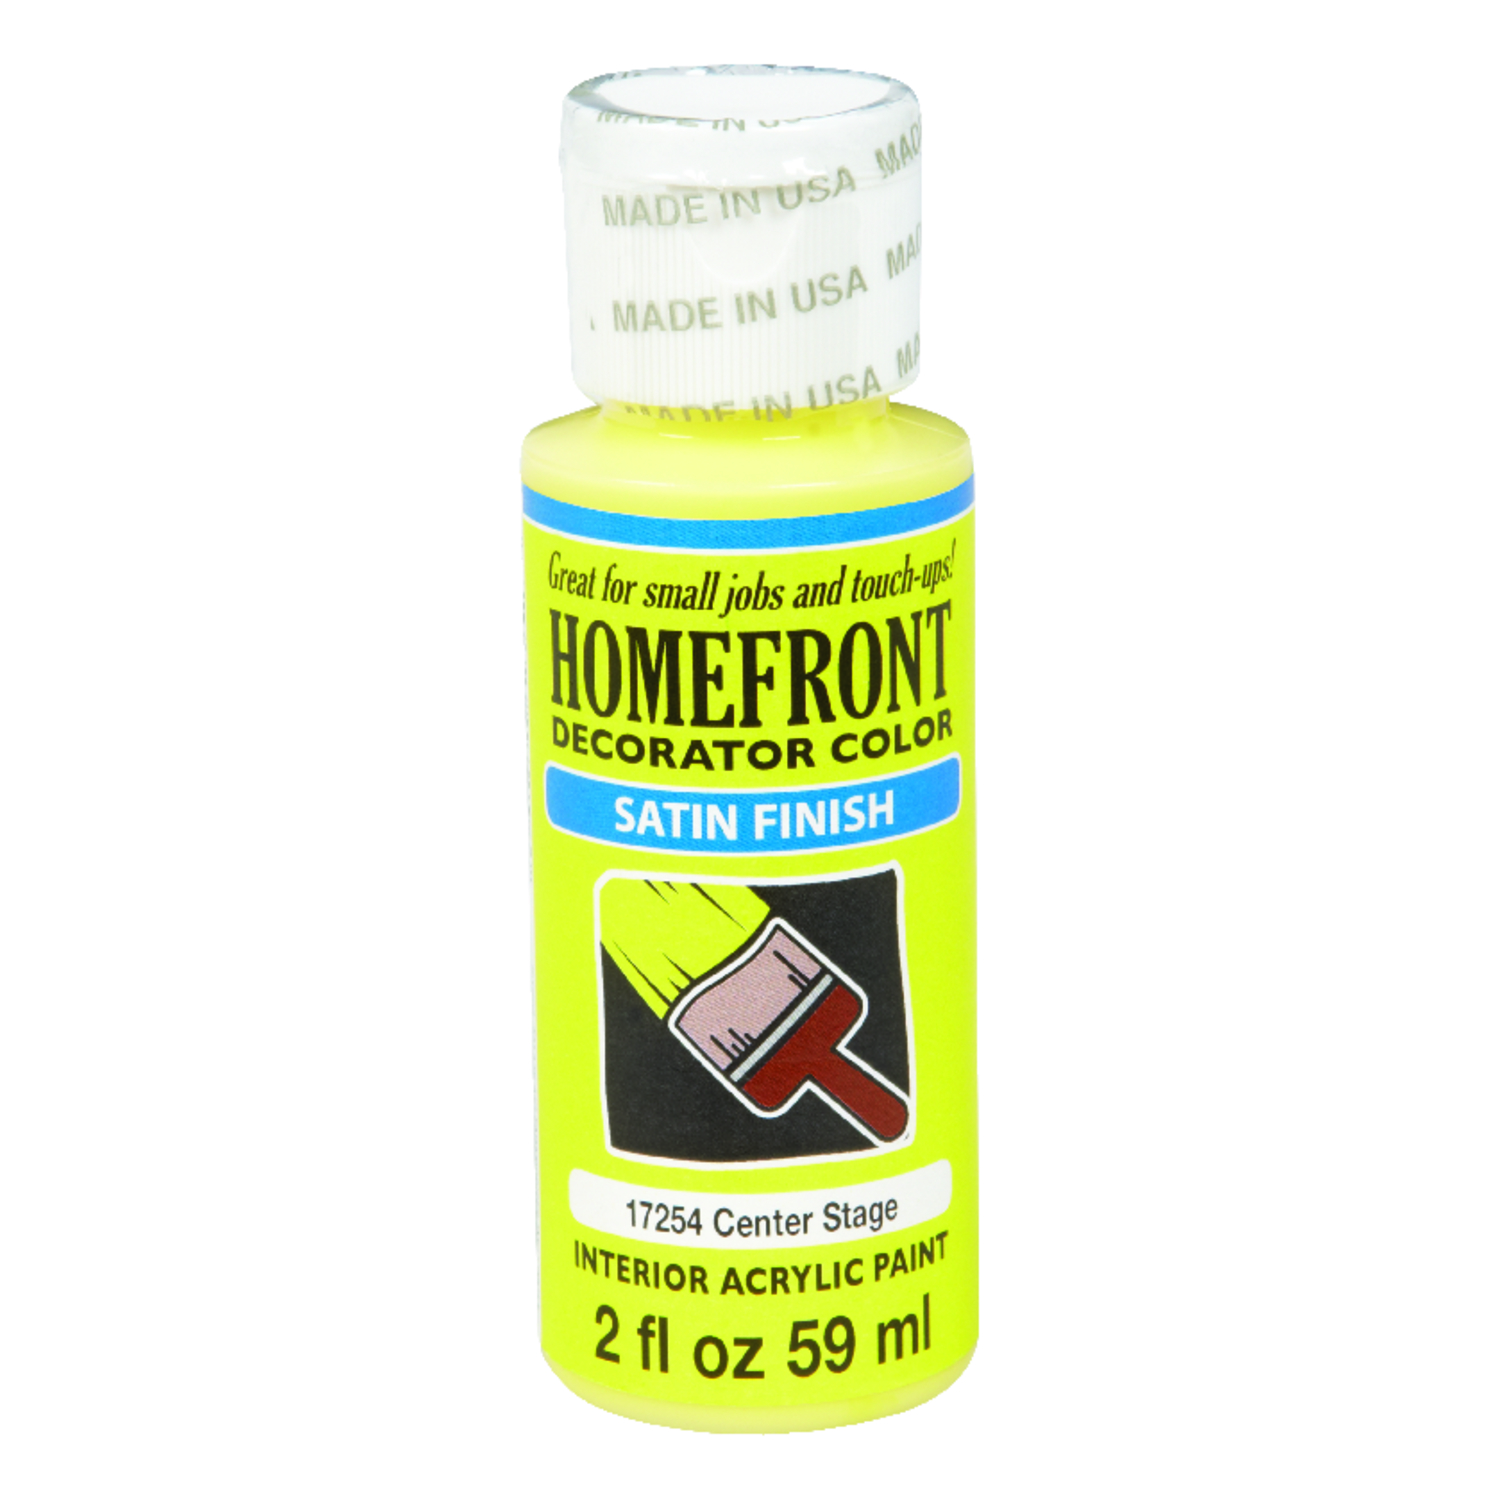 Homefront  Decorator Color  Satin  Center Stage  Acrylic Latex  2 oz. Hobby Paint